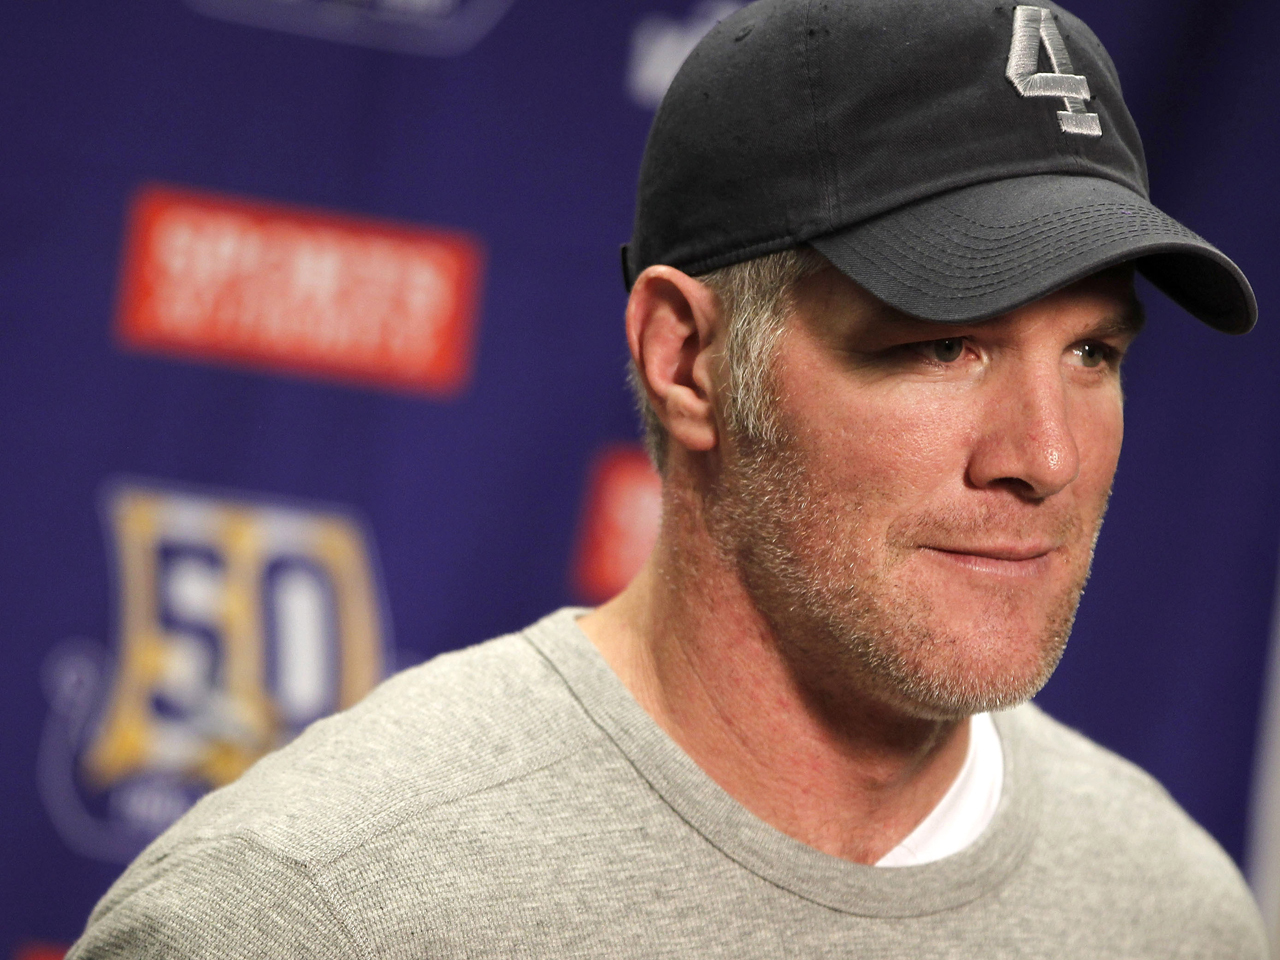 brett favre admits serious memory loss in radio interview cbs news